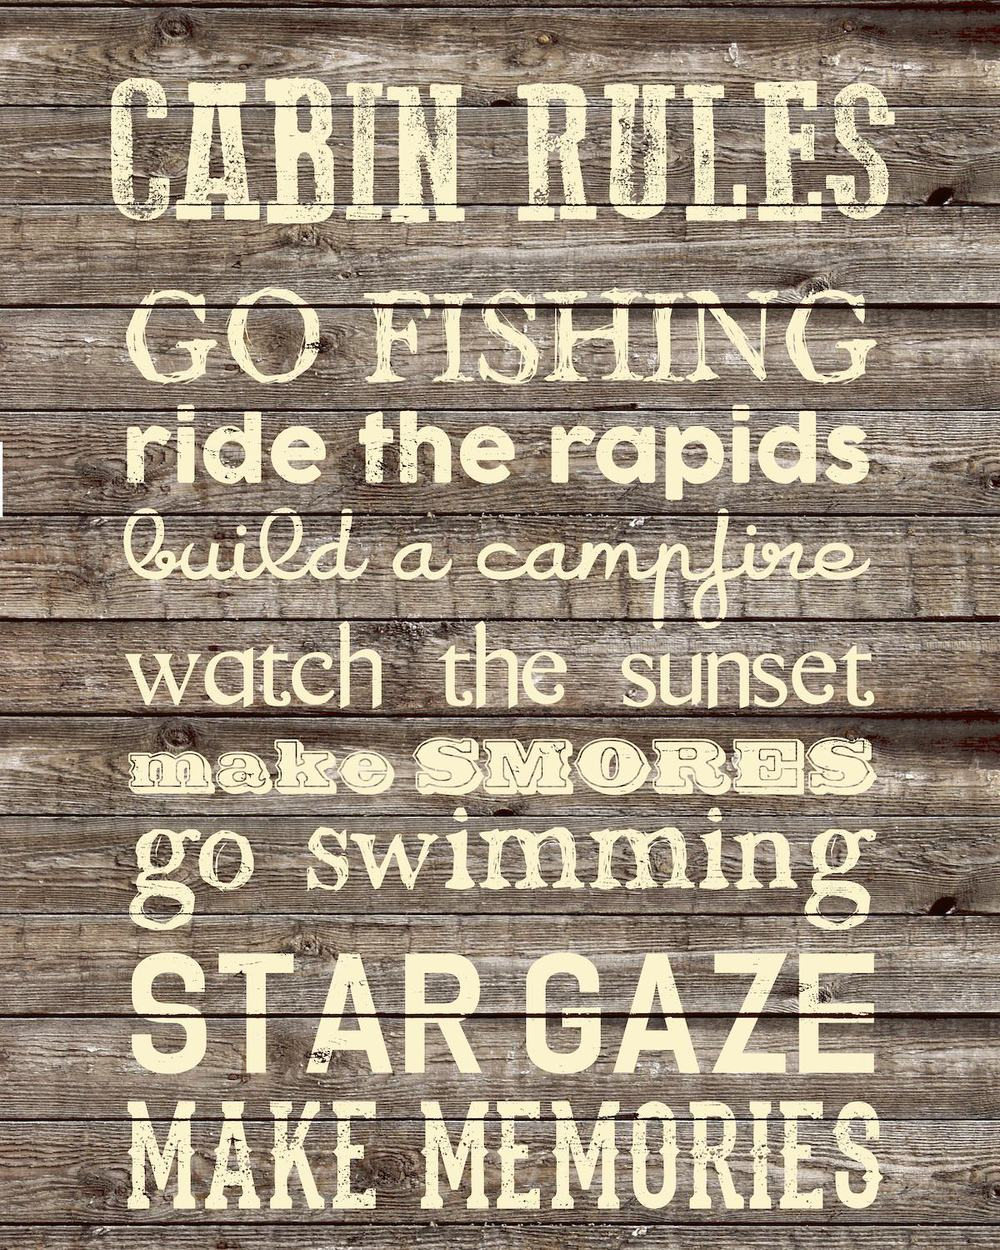 S416 cabin rules wood LR